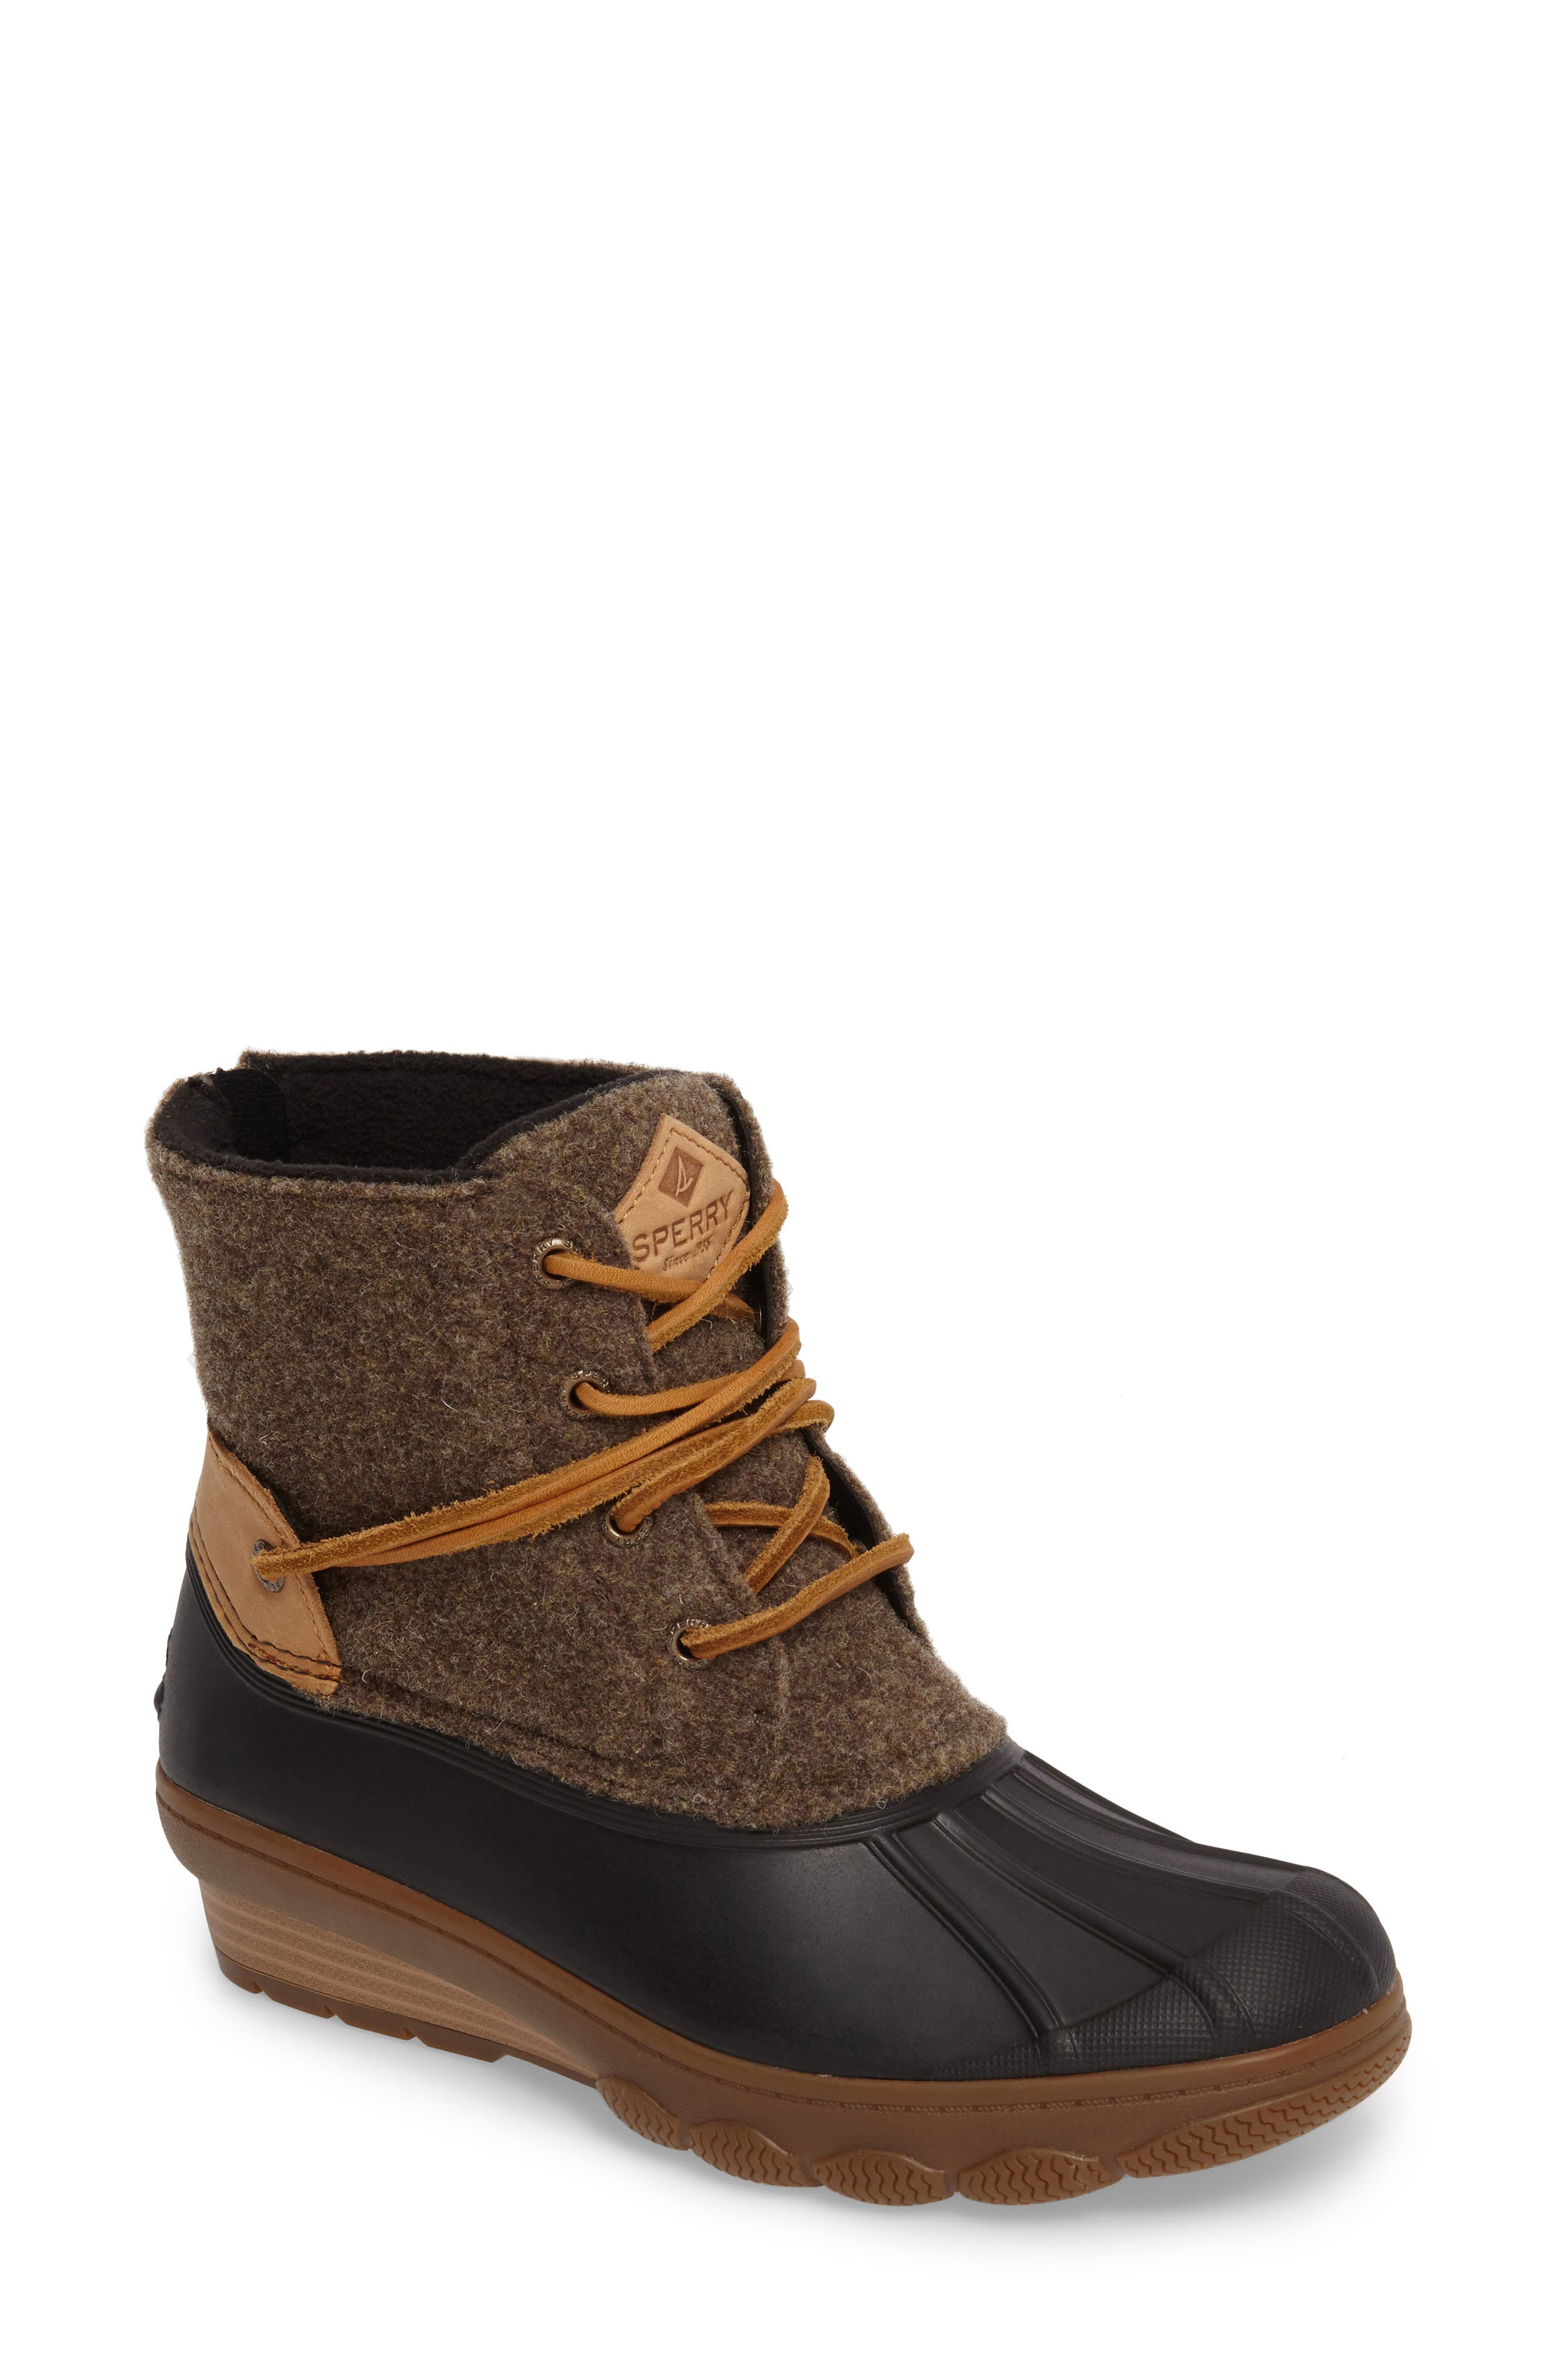 Sperry Saltwater Tide Wedge Boot (Women's Shoes)